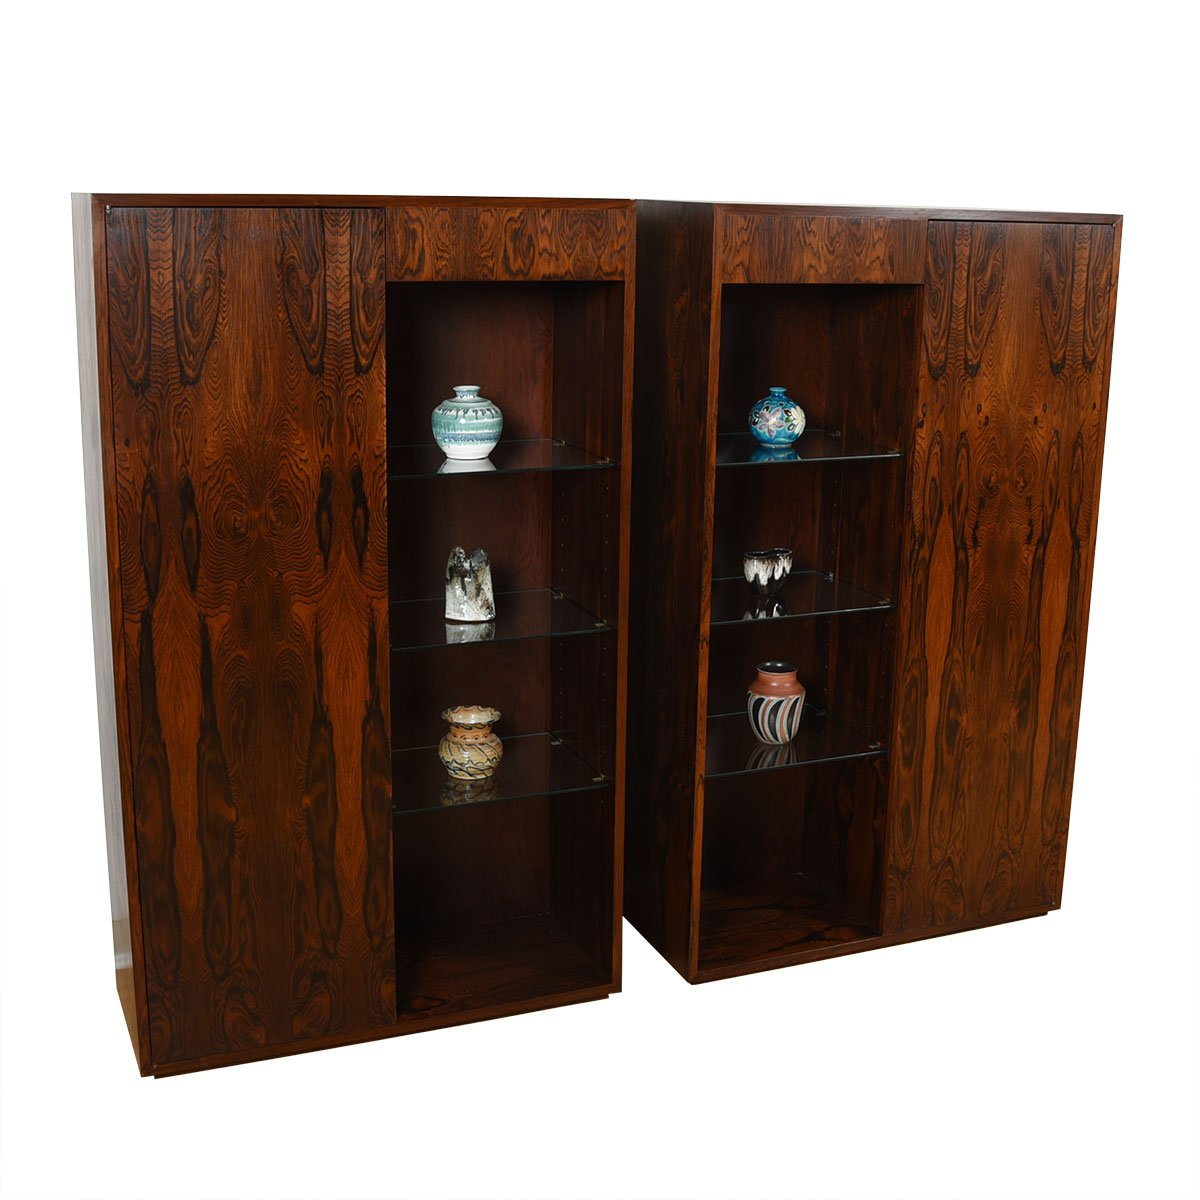 Exquisite Pair of Danish Modern Rosewood Lighted Display Cabinets